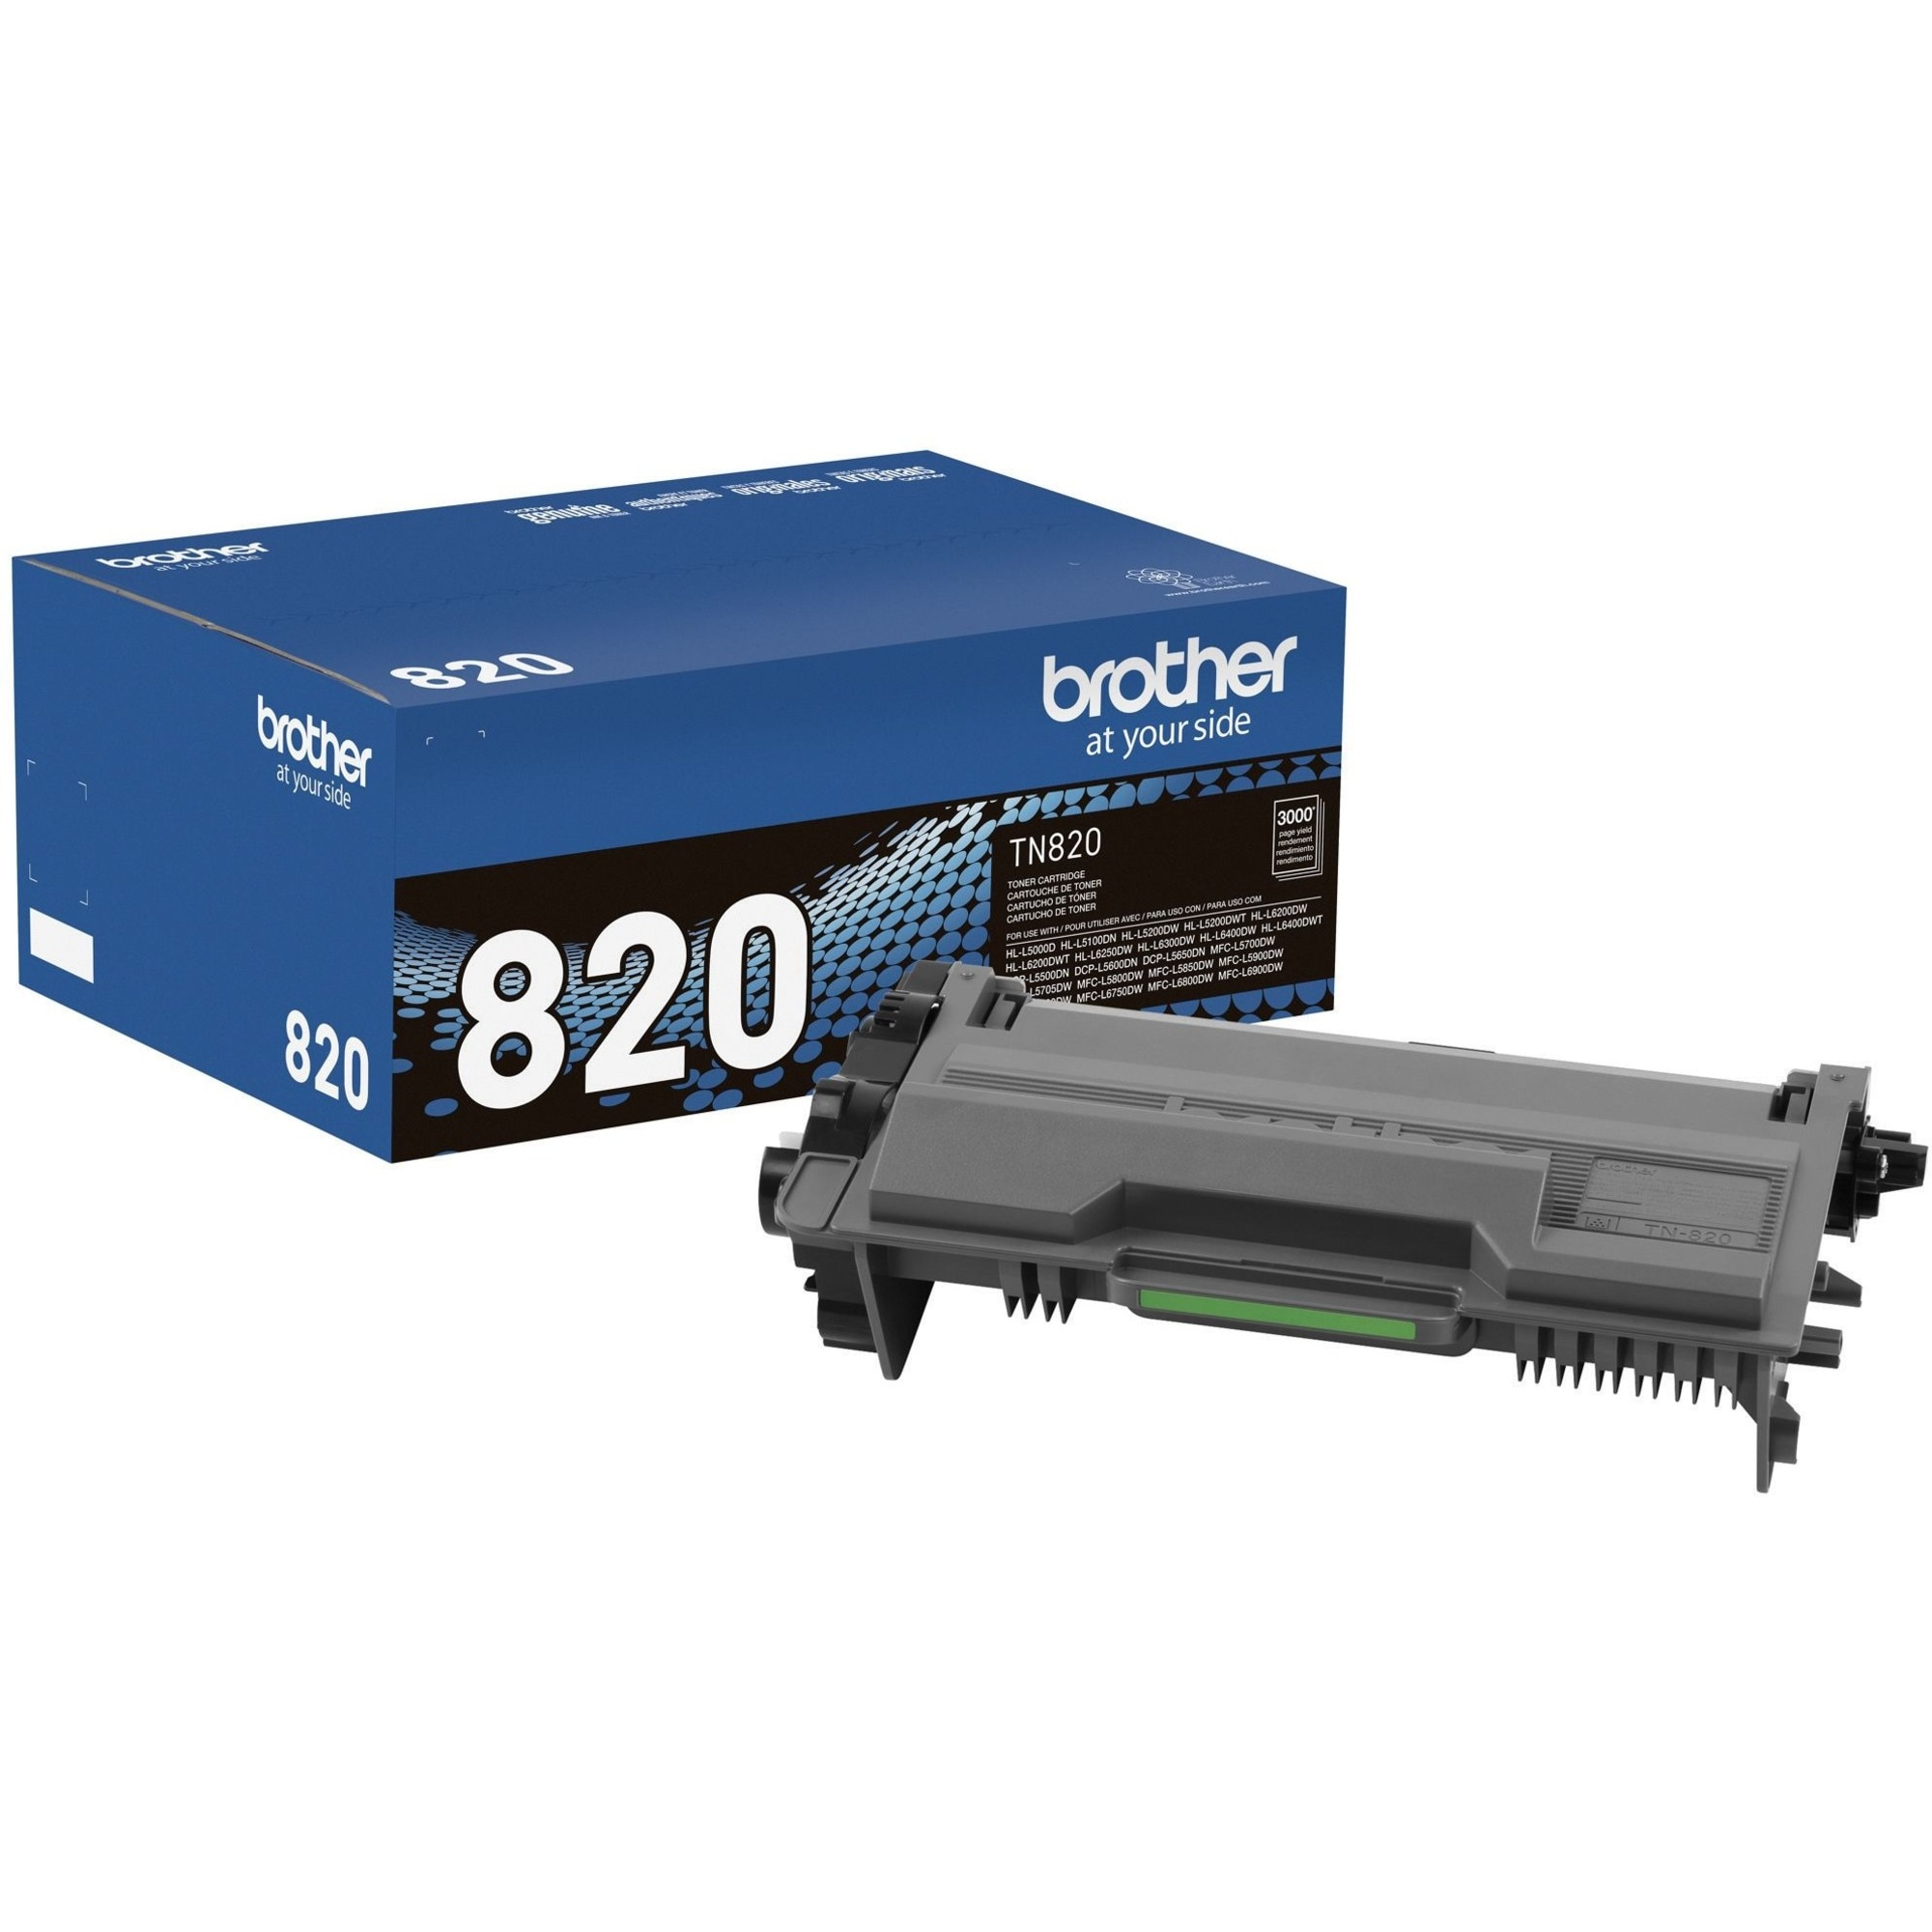 Brother Genuine TN820 Mono Laser Black Toner Cartridge